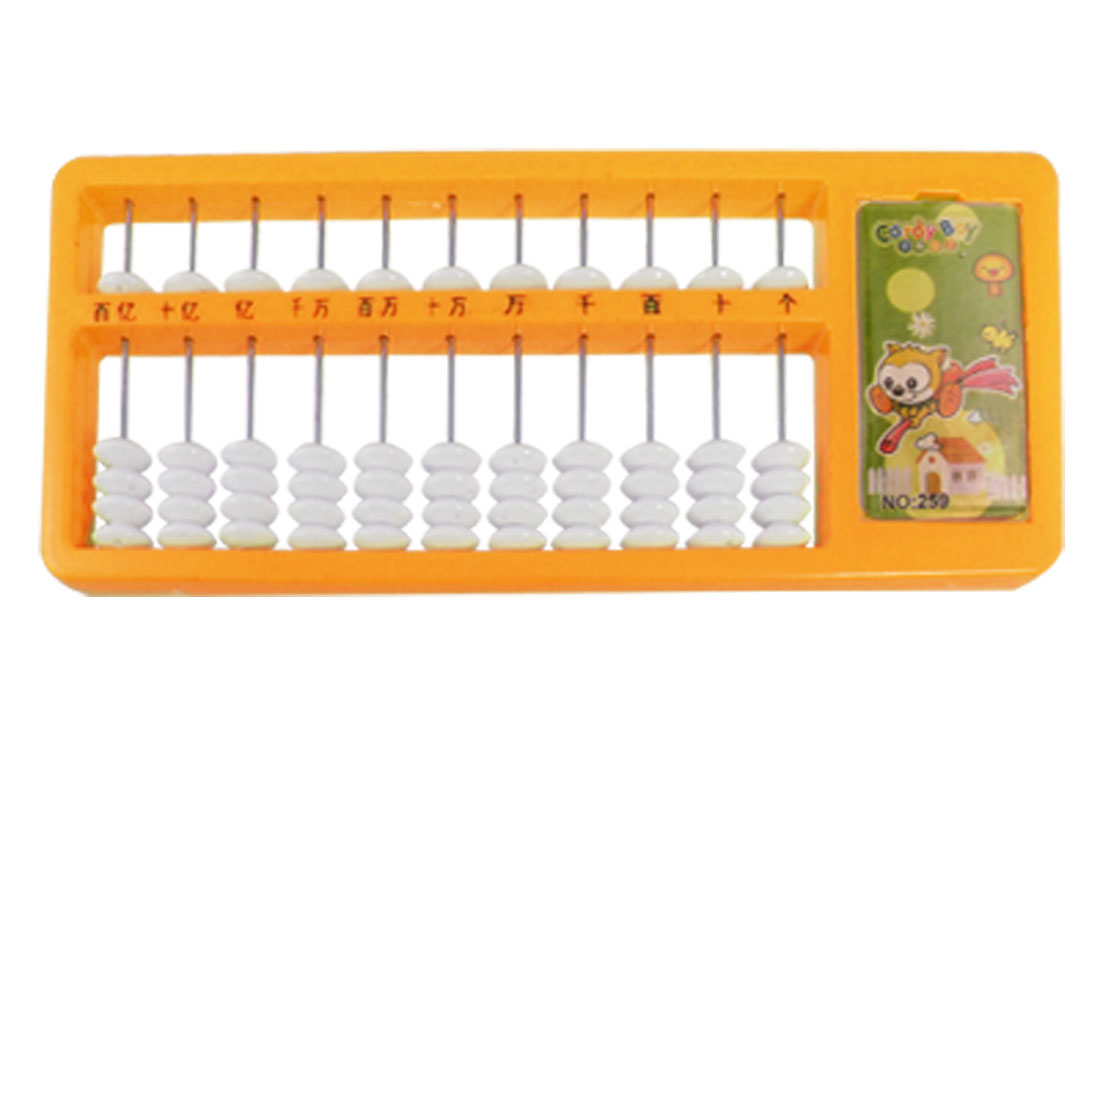 Orange 11 Digits Educational Japanese Soroban Abacus for Kids Children